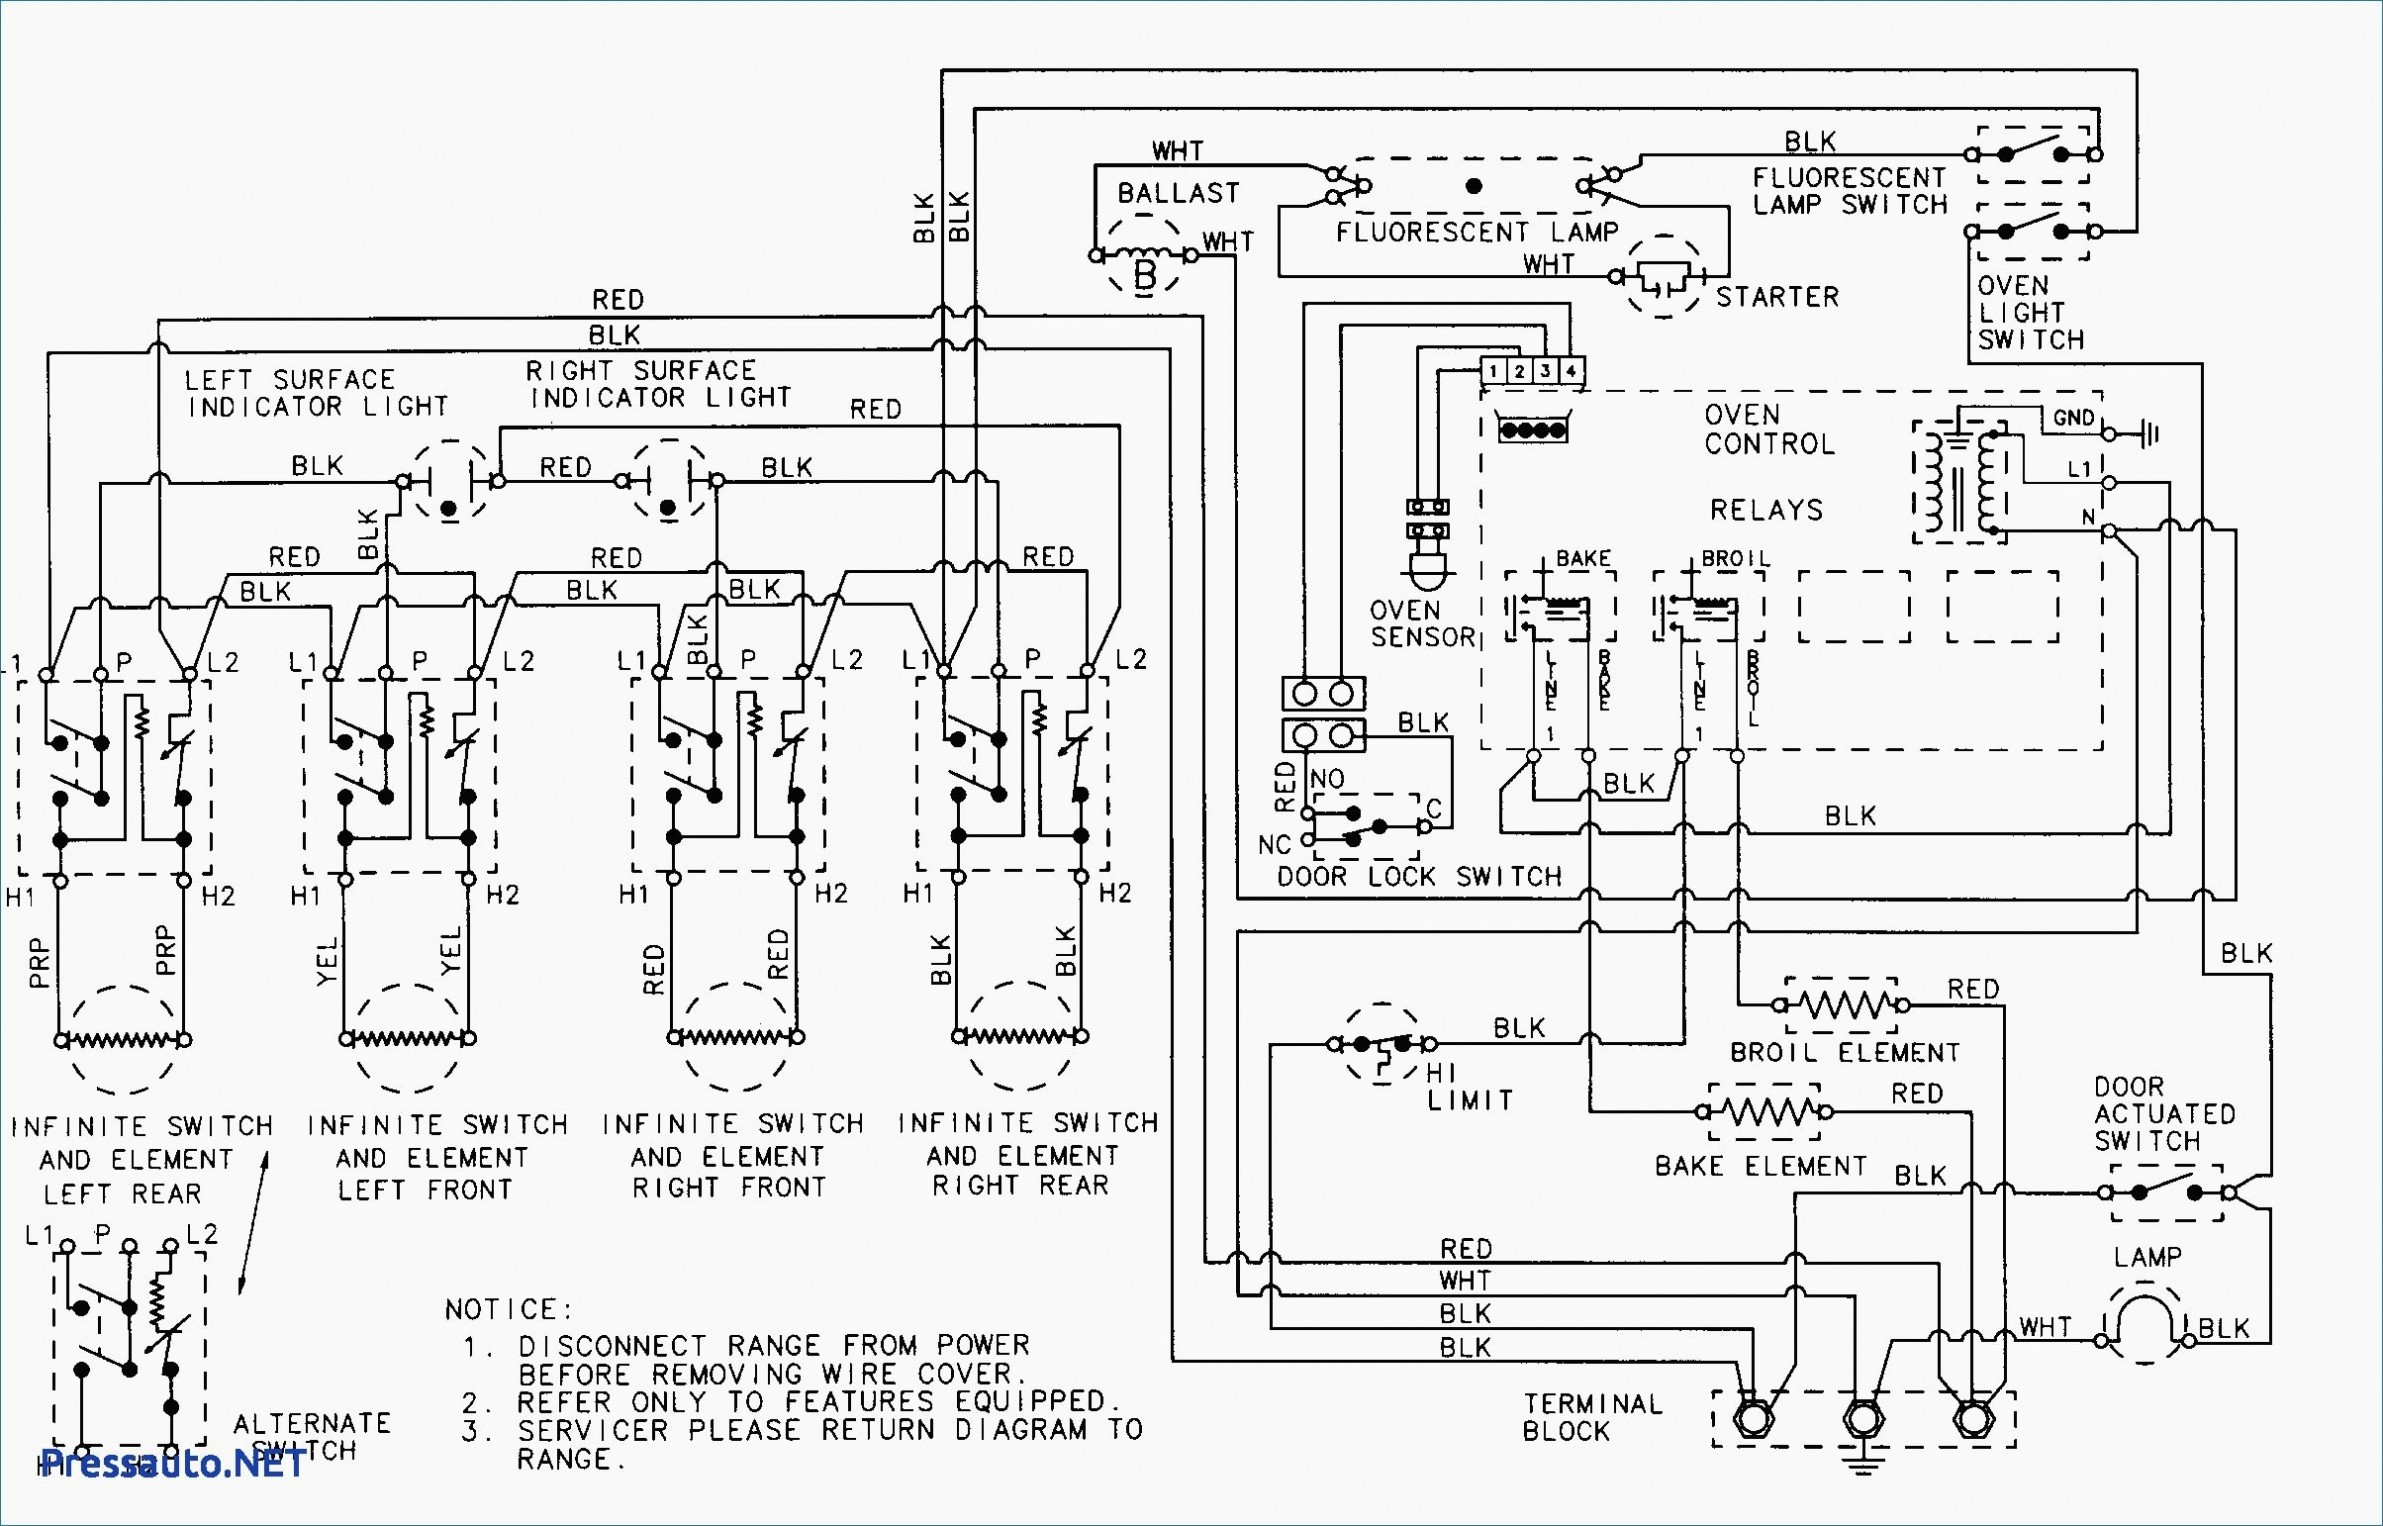 Pioneer Deh 1300mp Wiring Diagram Pioneer Deh 1300mp Wiring Diagram New Deh 1300mp Wiring Diagram Of Pioneer Deh 1300mp Wiring Diagram